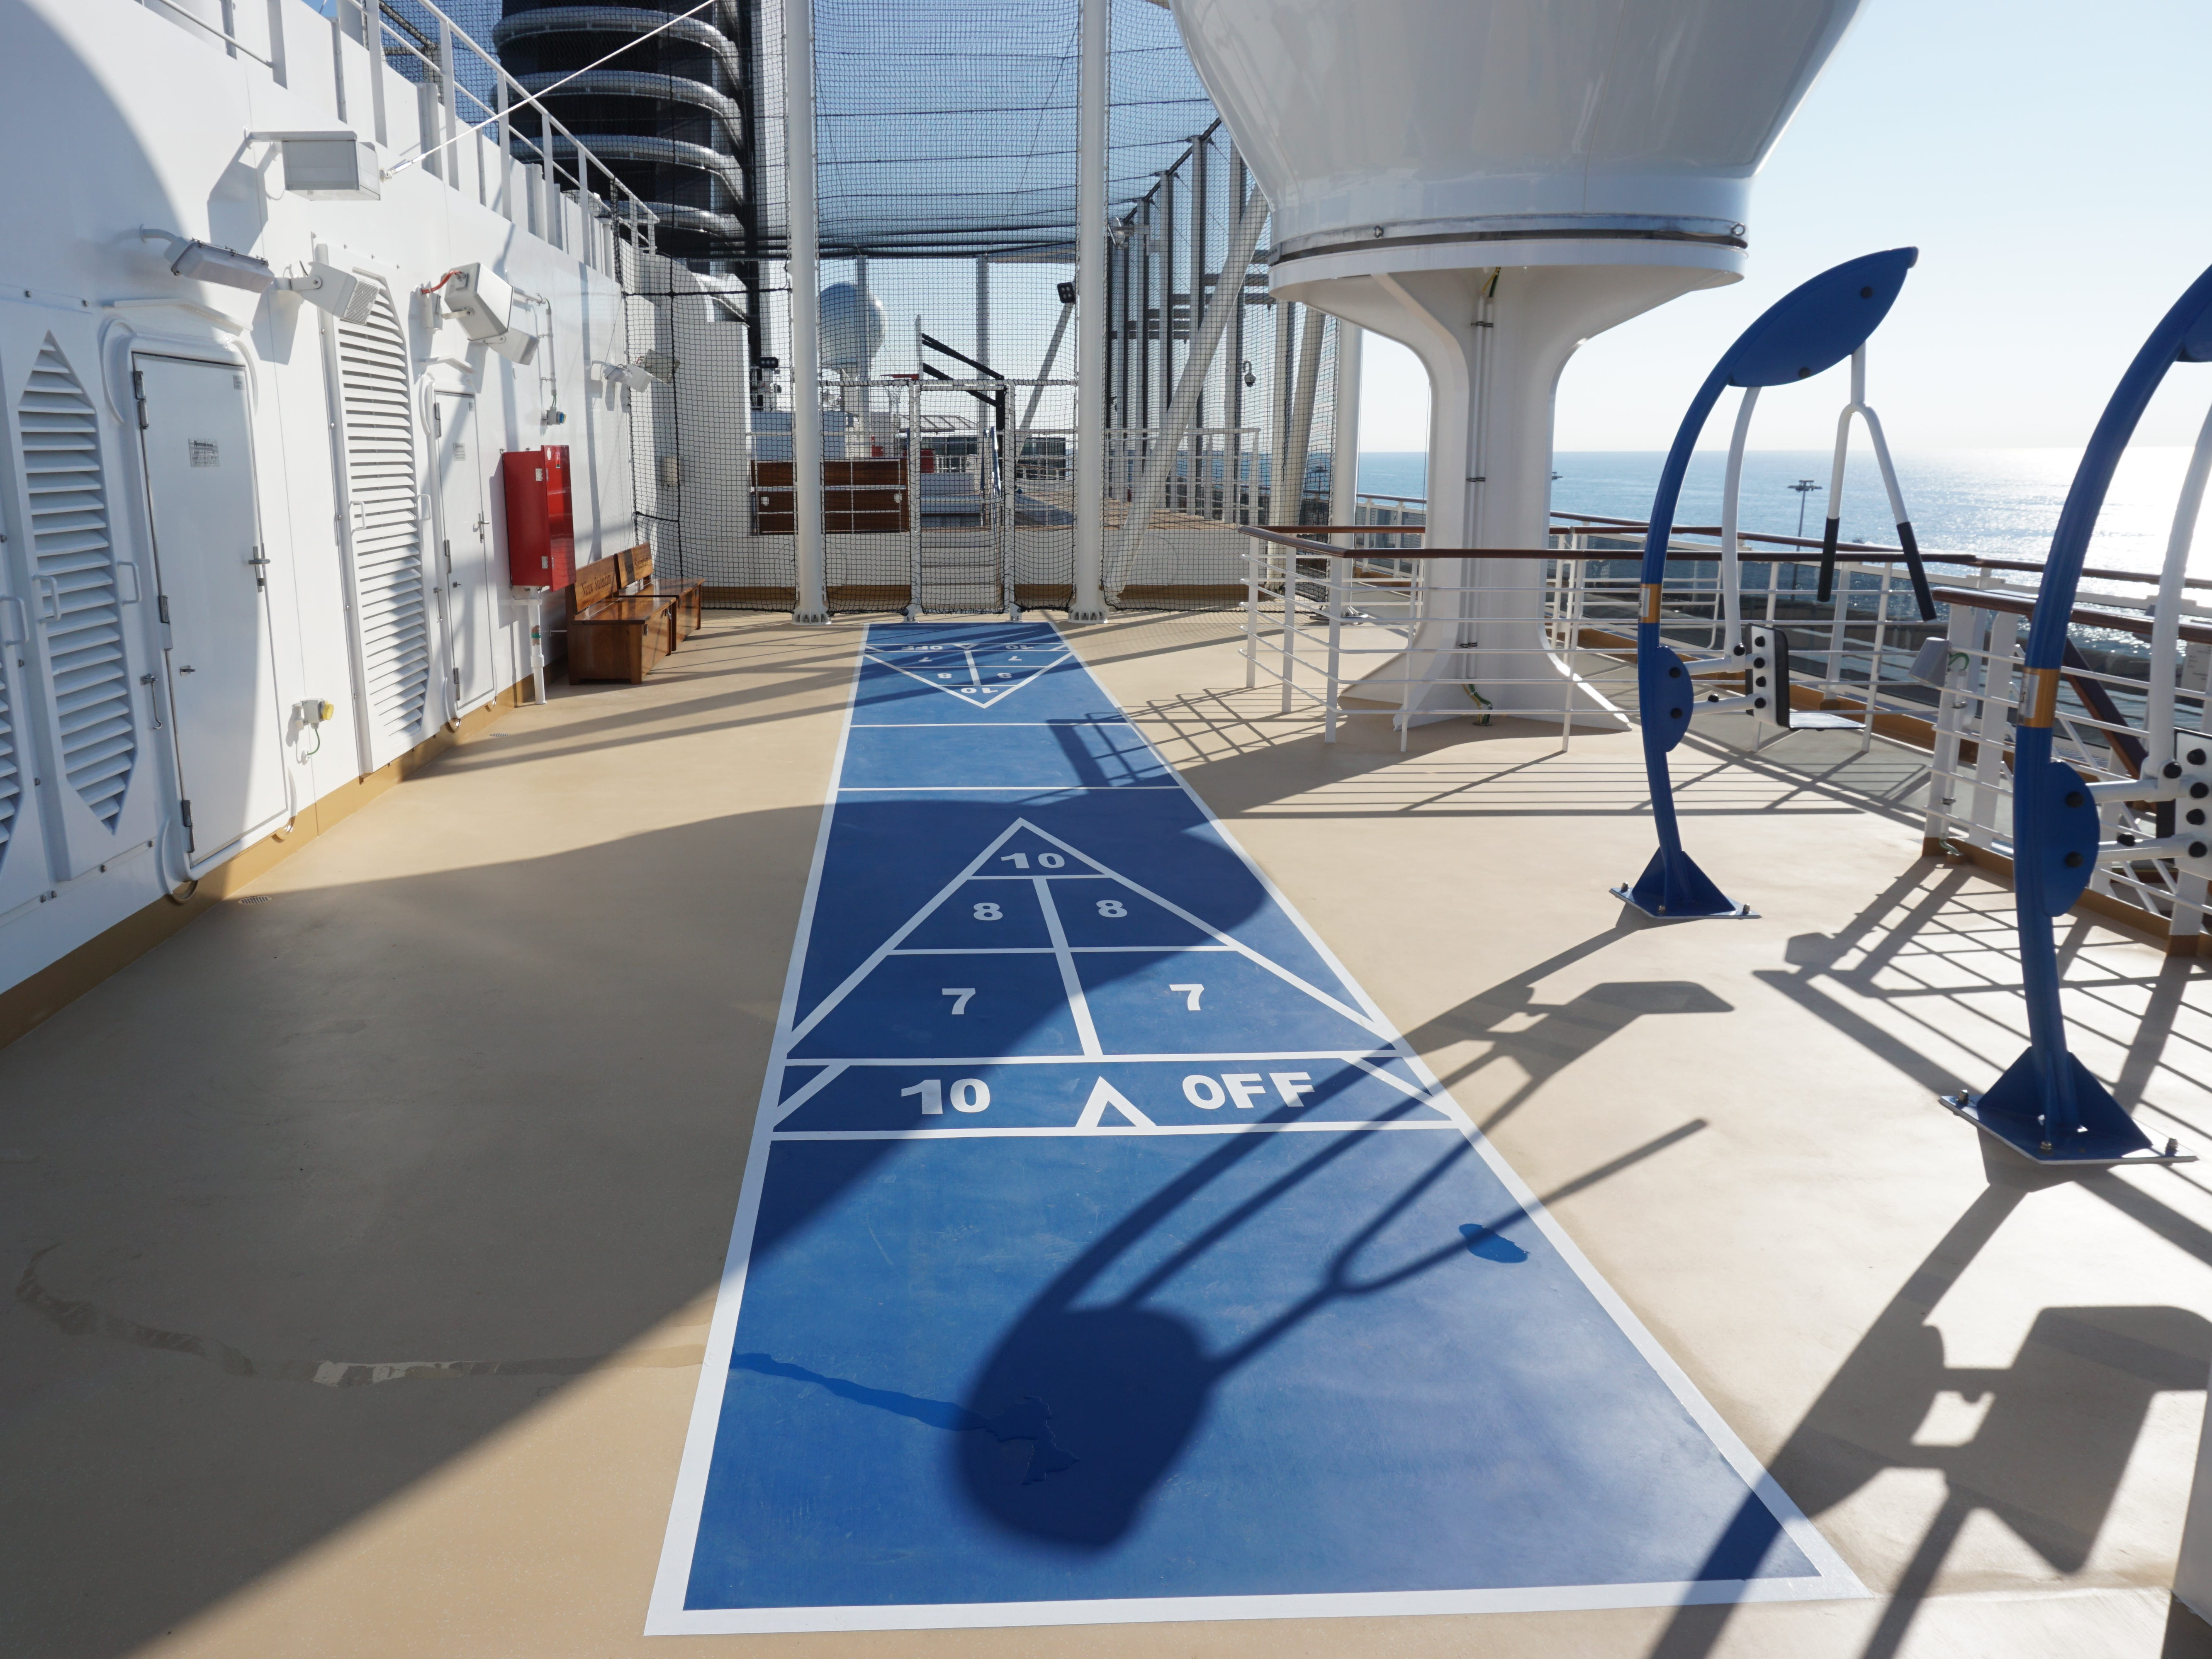 Aft of the jogging track on Deck 11, there are shuffleboard courts.